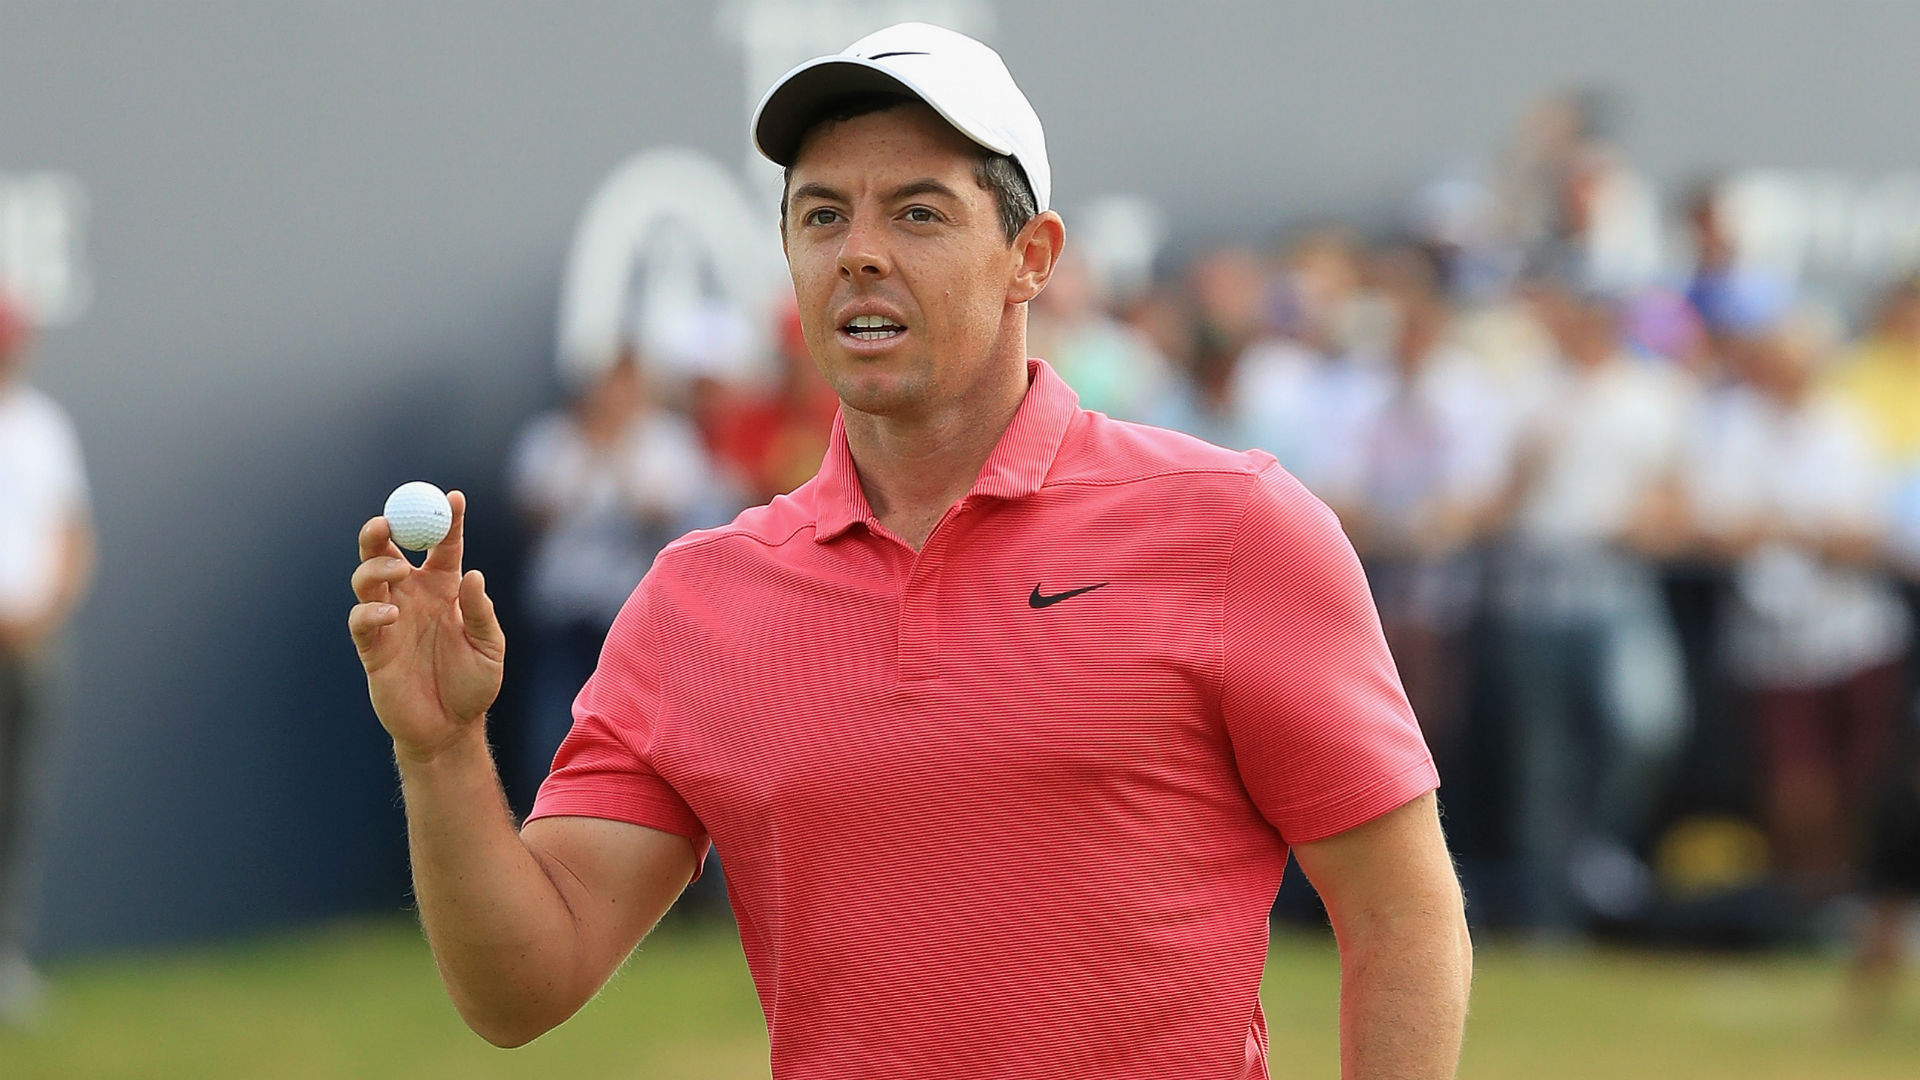 British Open 2018: Rory McIlroy says its great to be back in mix